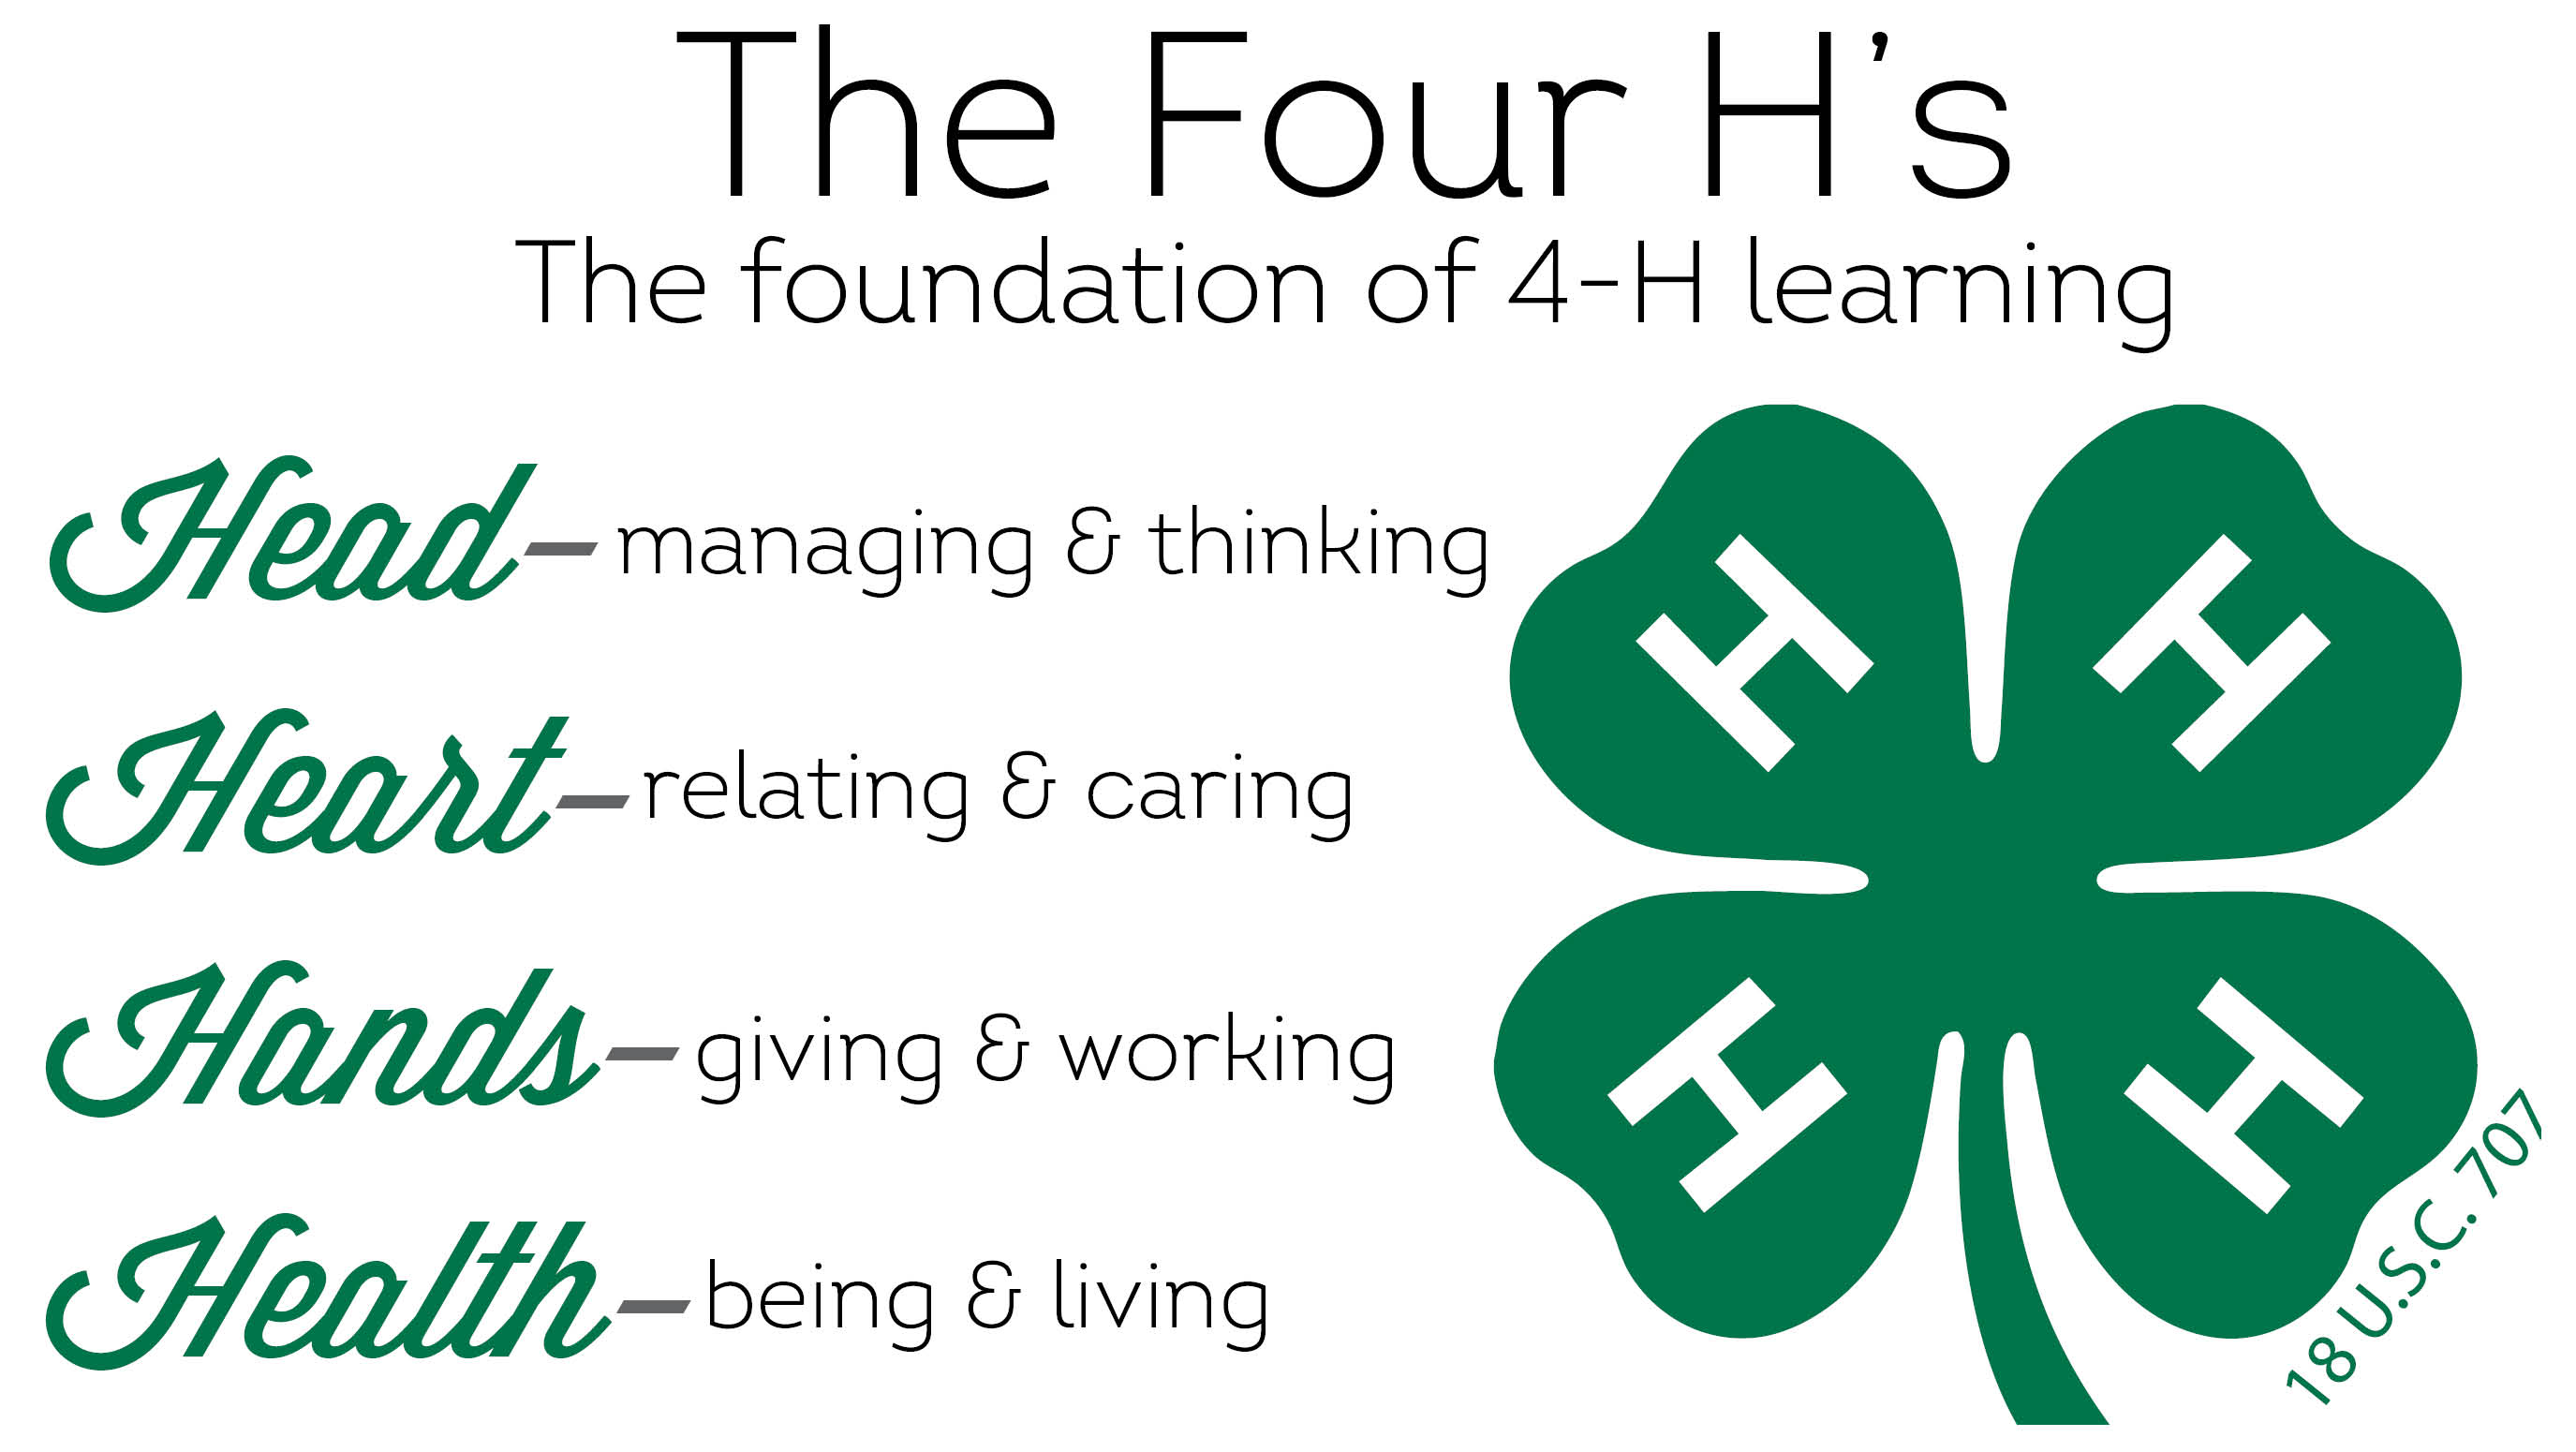 The 4 H's: Head, Heart, Hands, Health